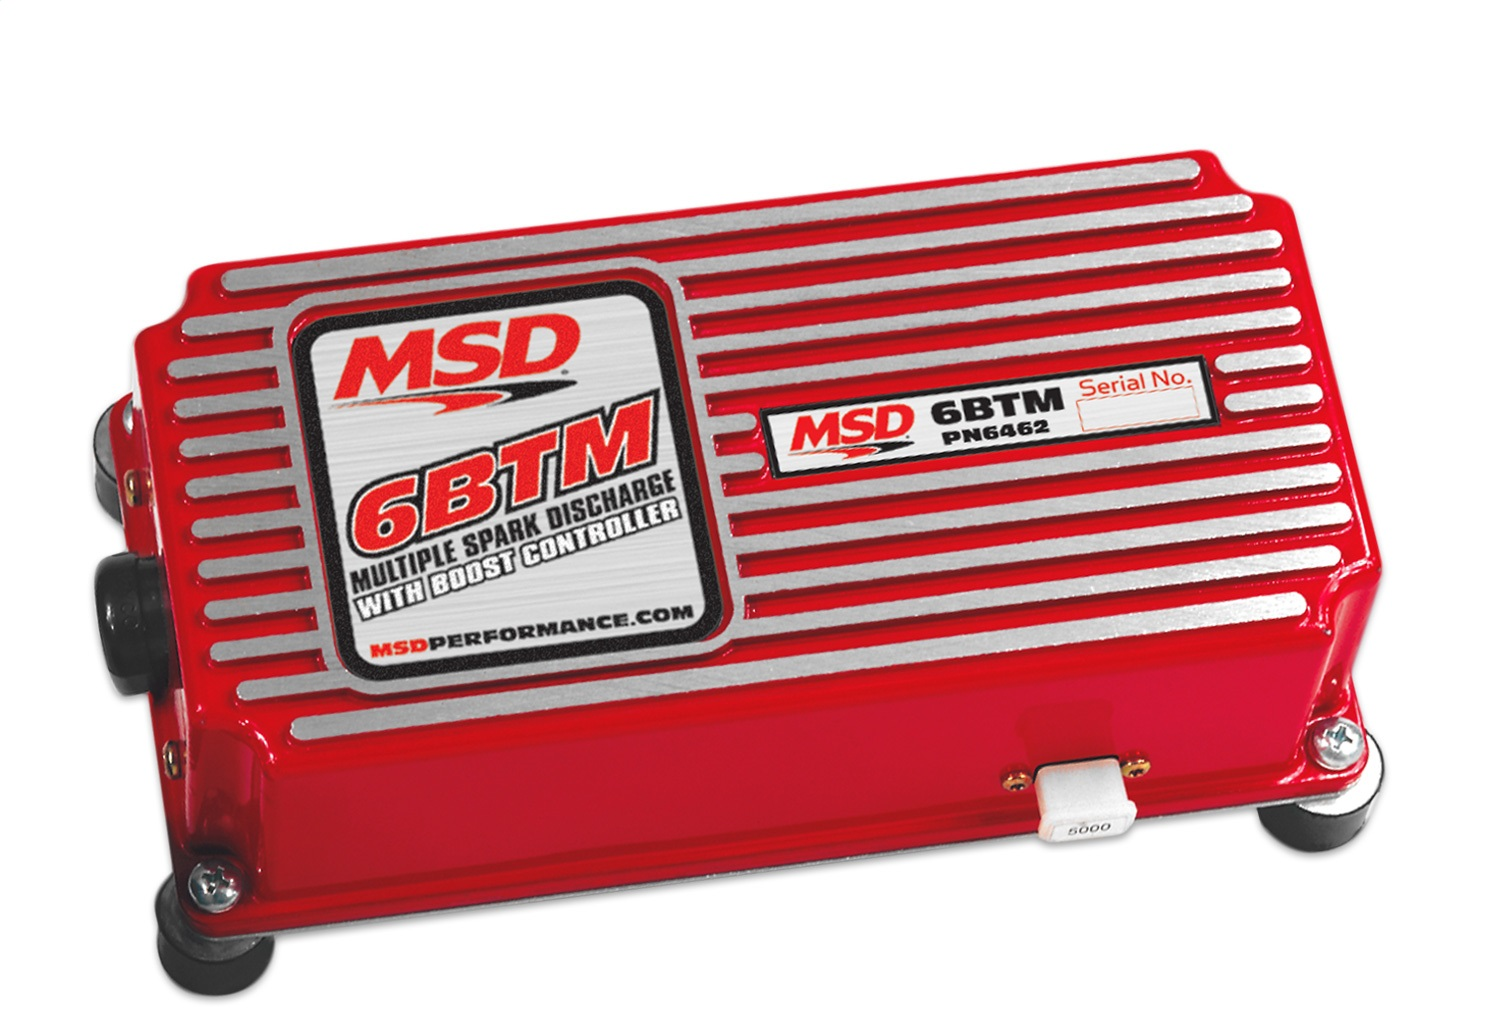 hight resolution of details about msd ignition 6462 6btm series multiple spark ignition controller